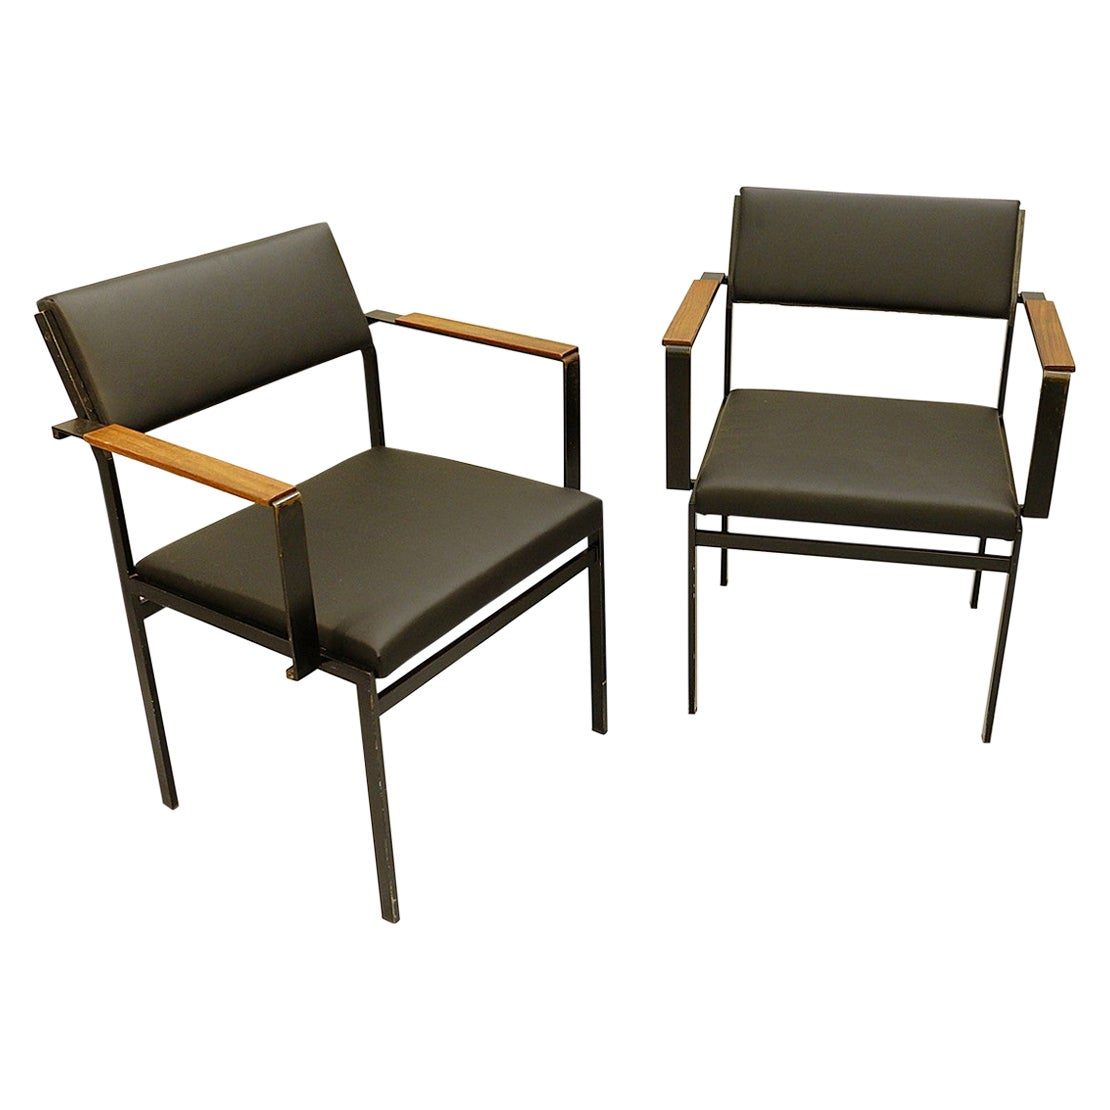 FM17 Japanese Series Chair by Cees Braakman for Pastoe, 1950s, Faux-Leather